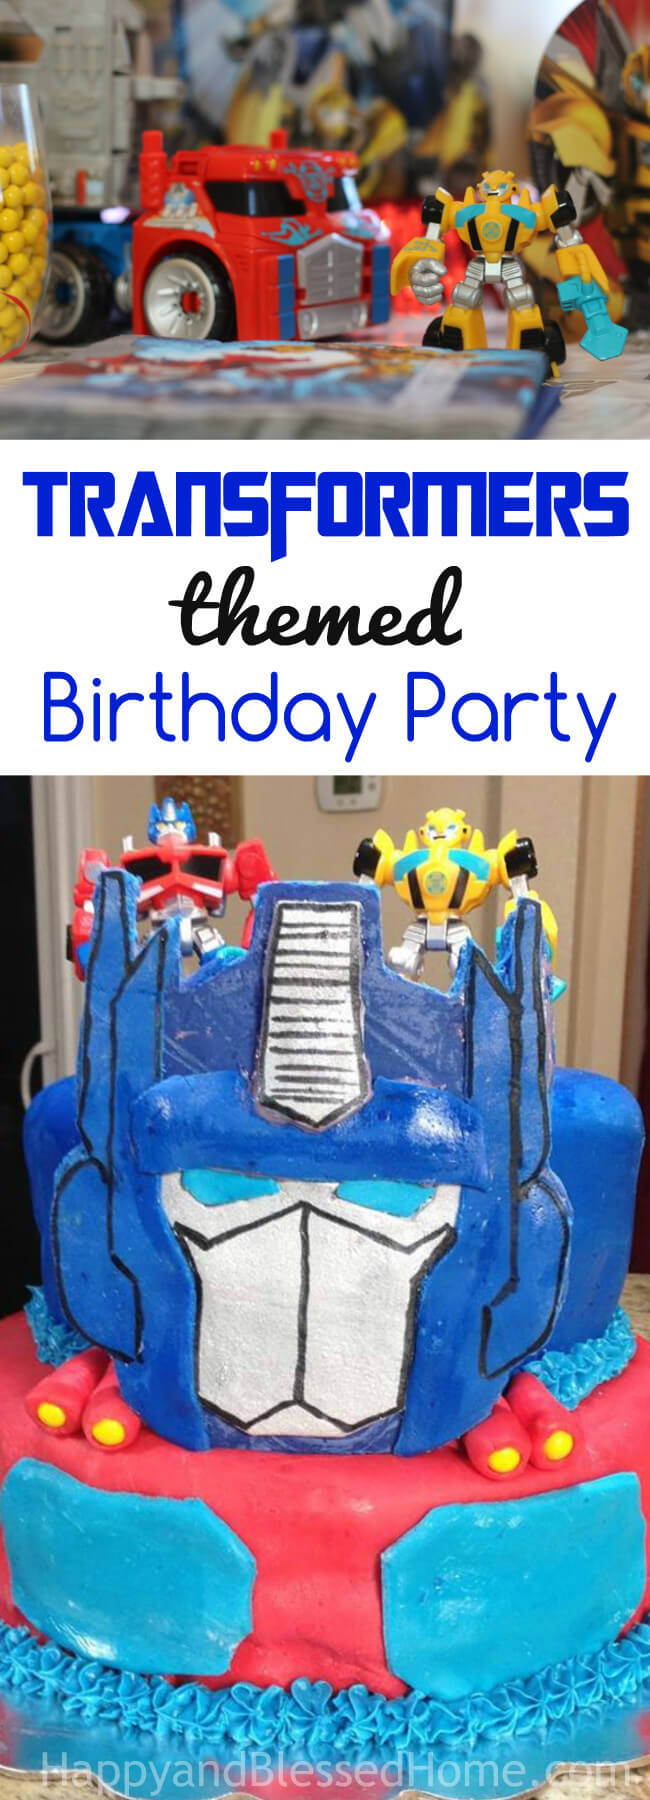 Transformers Birthday Cake Rescue Bots And Transformers Birthday Party Happy And Blessed Home